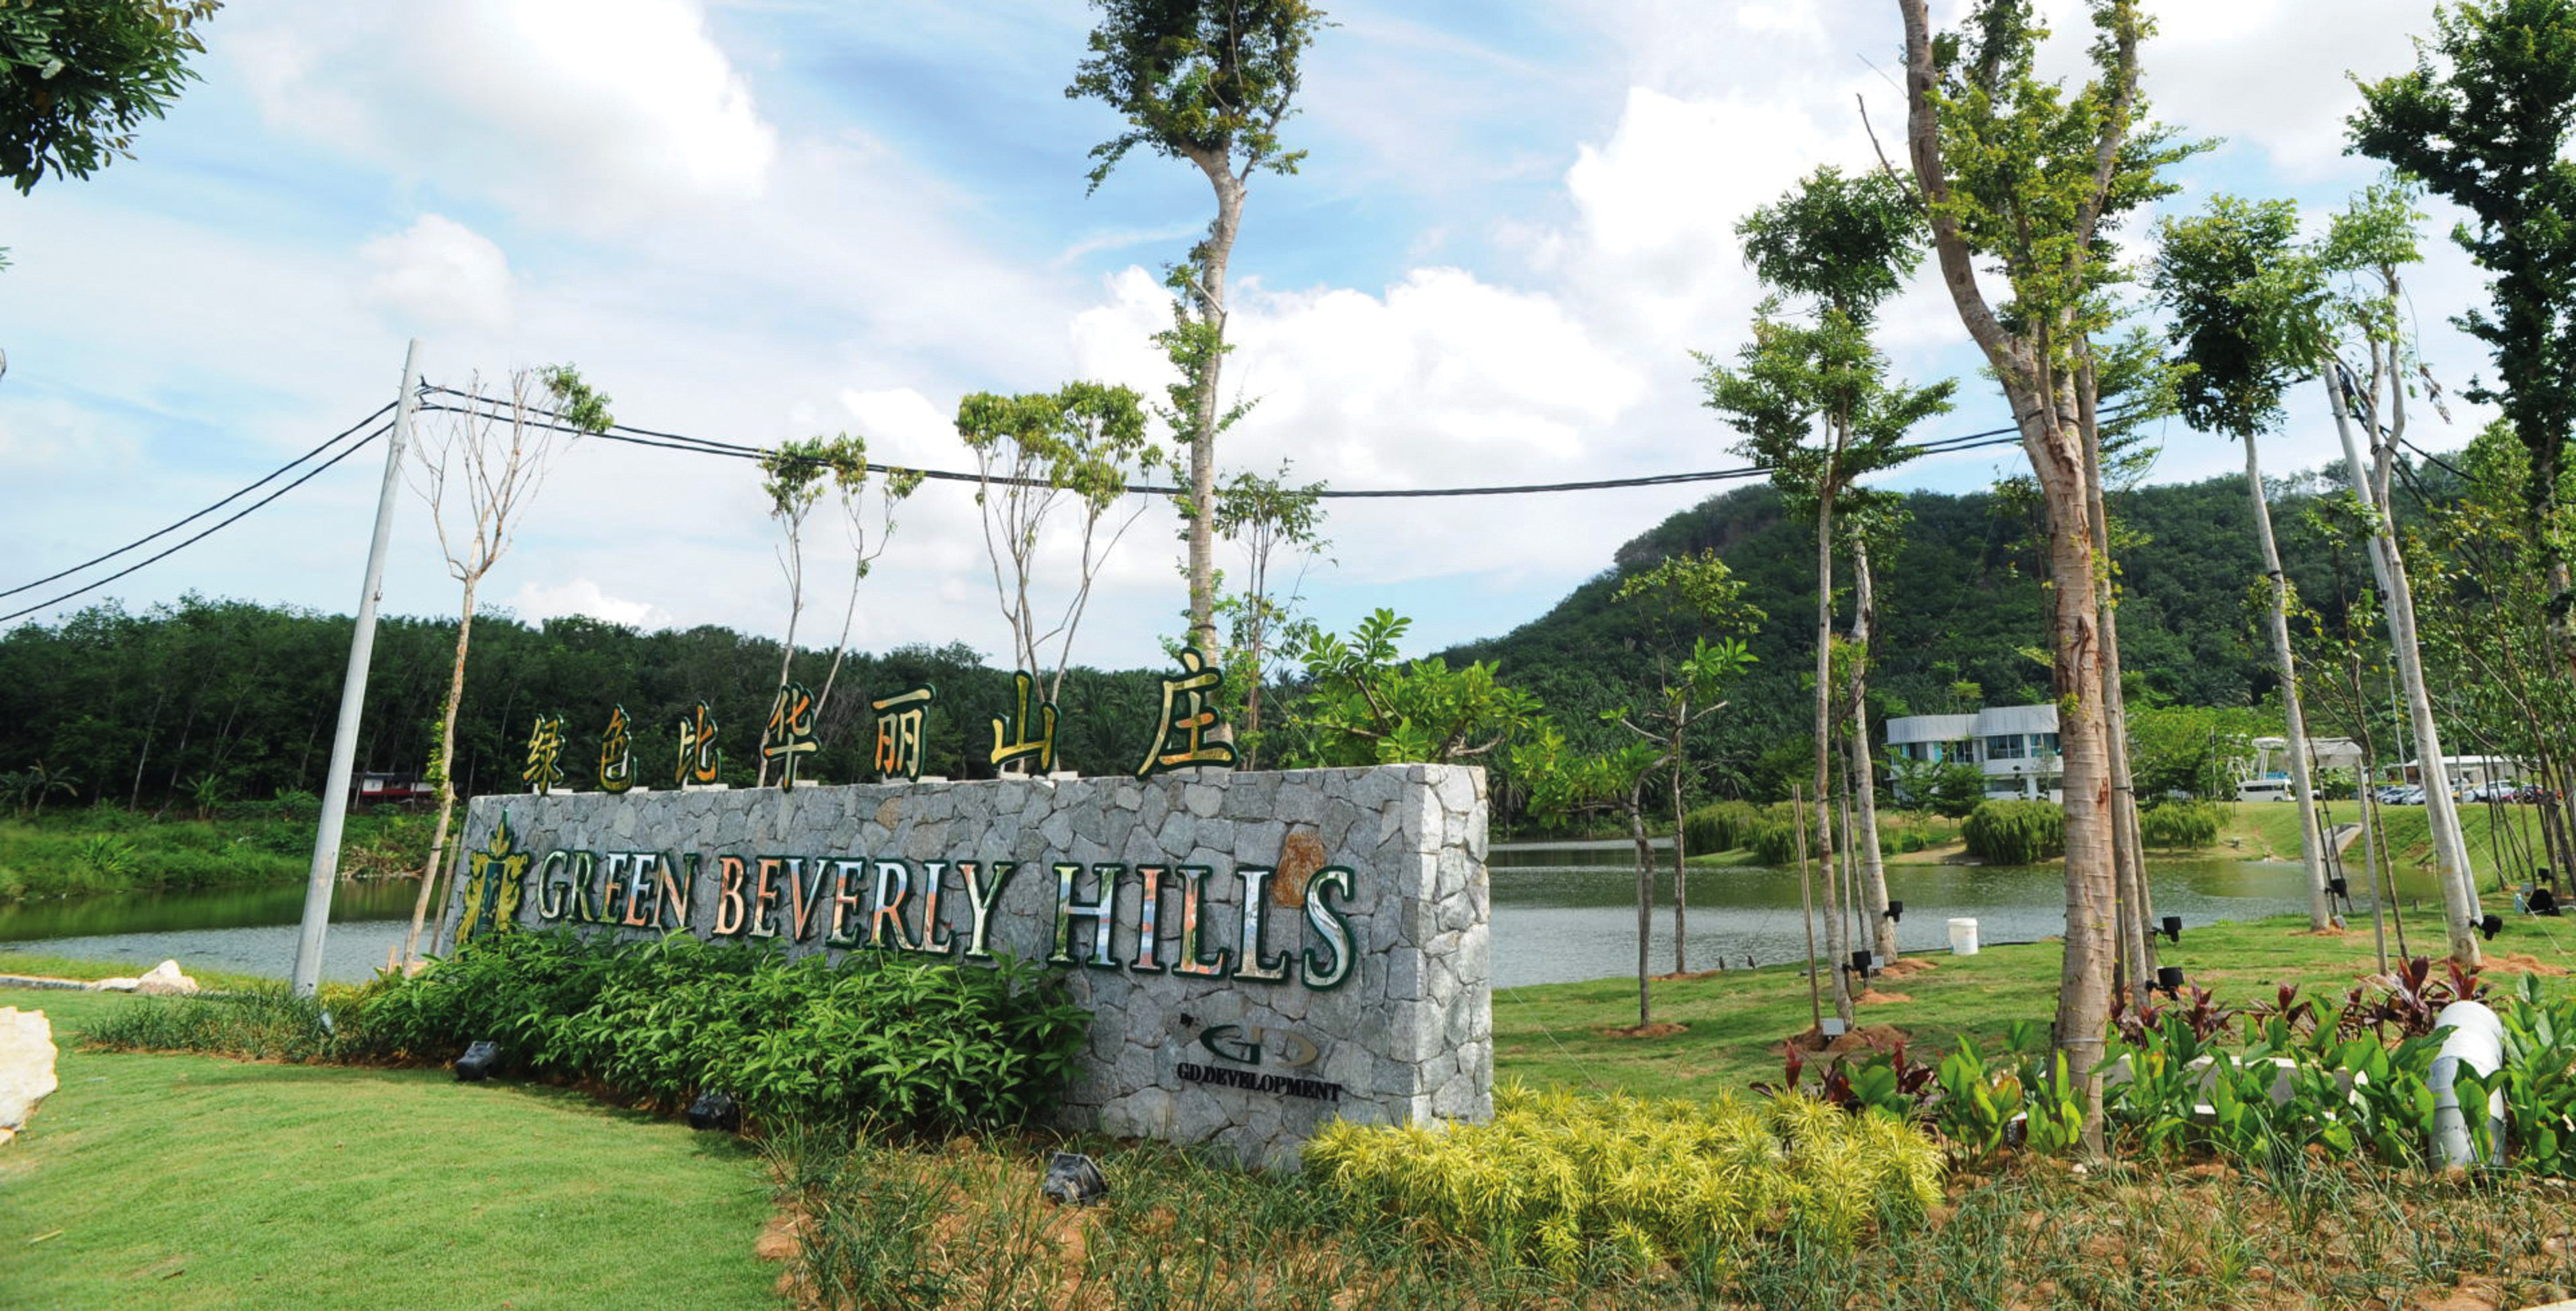 Putra nilai house for sale green beverly hills video